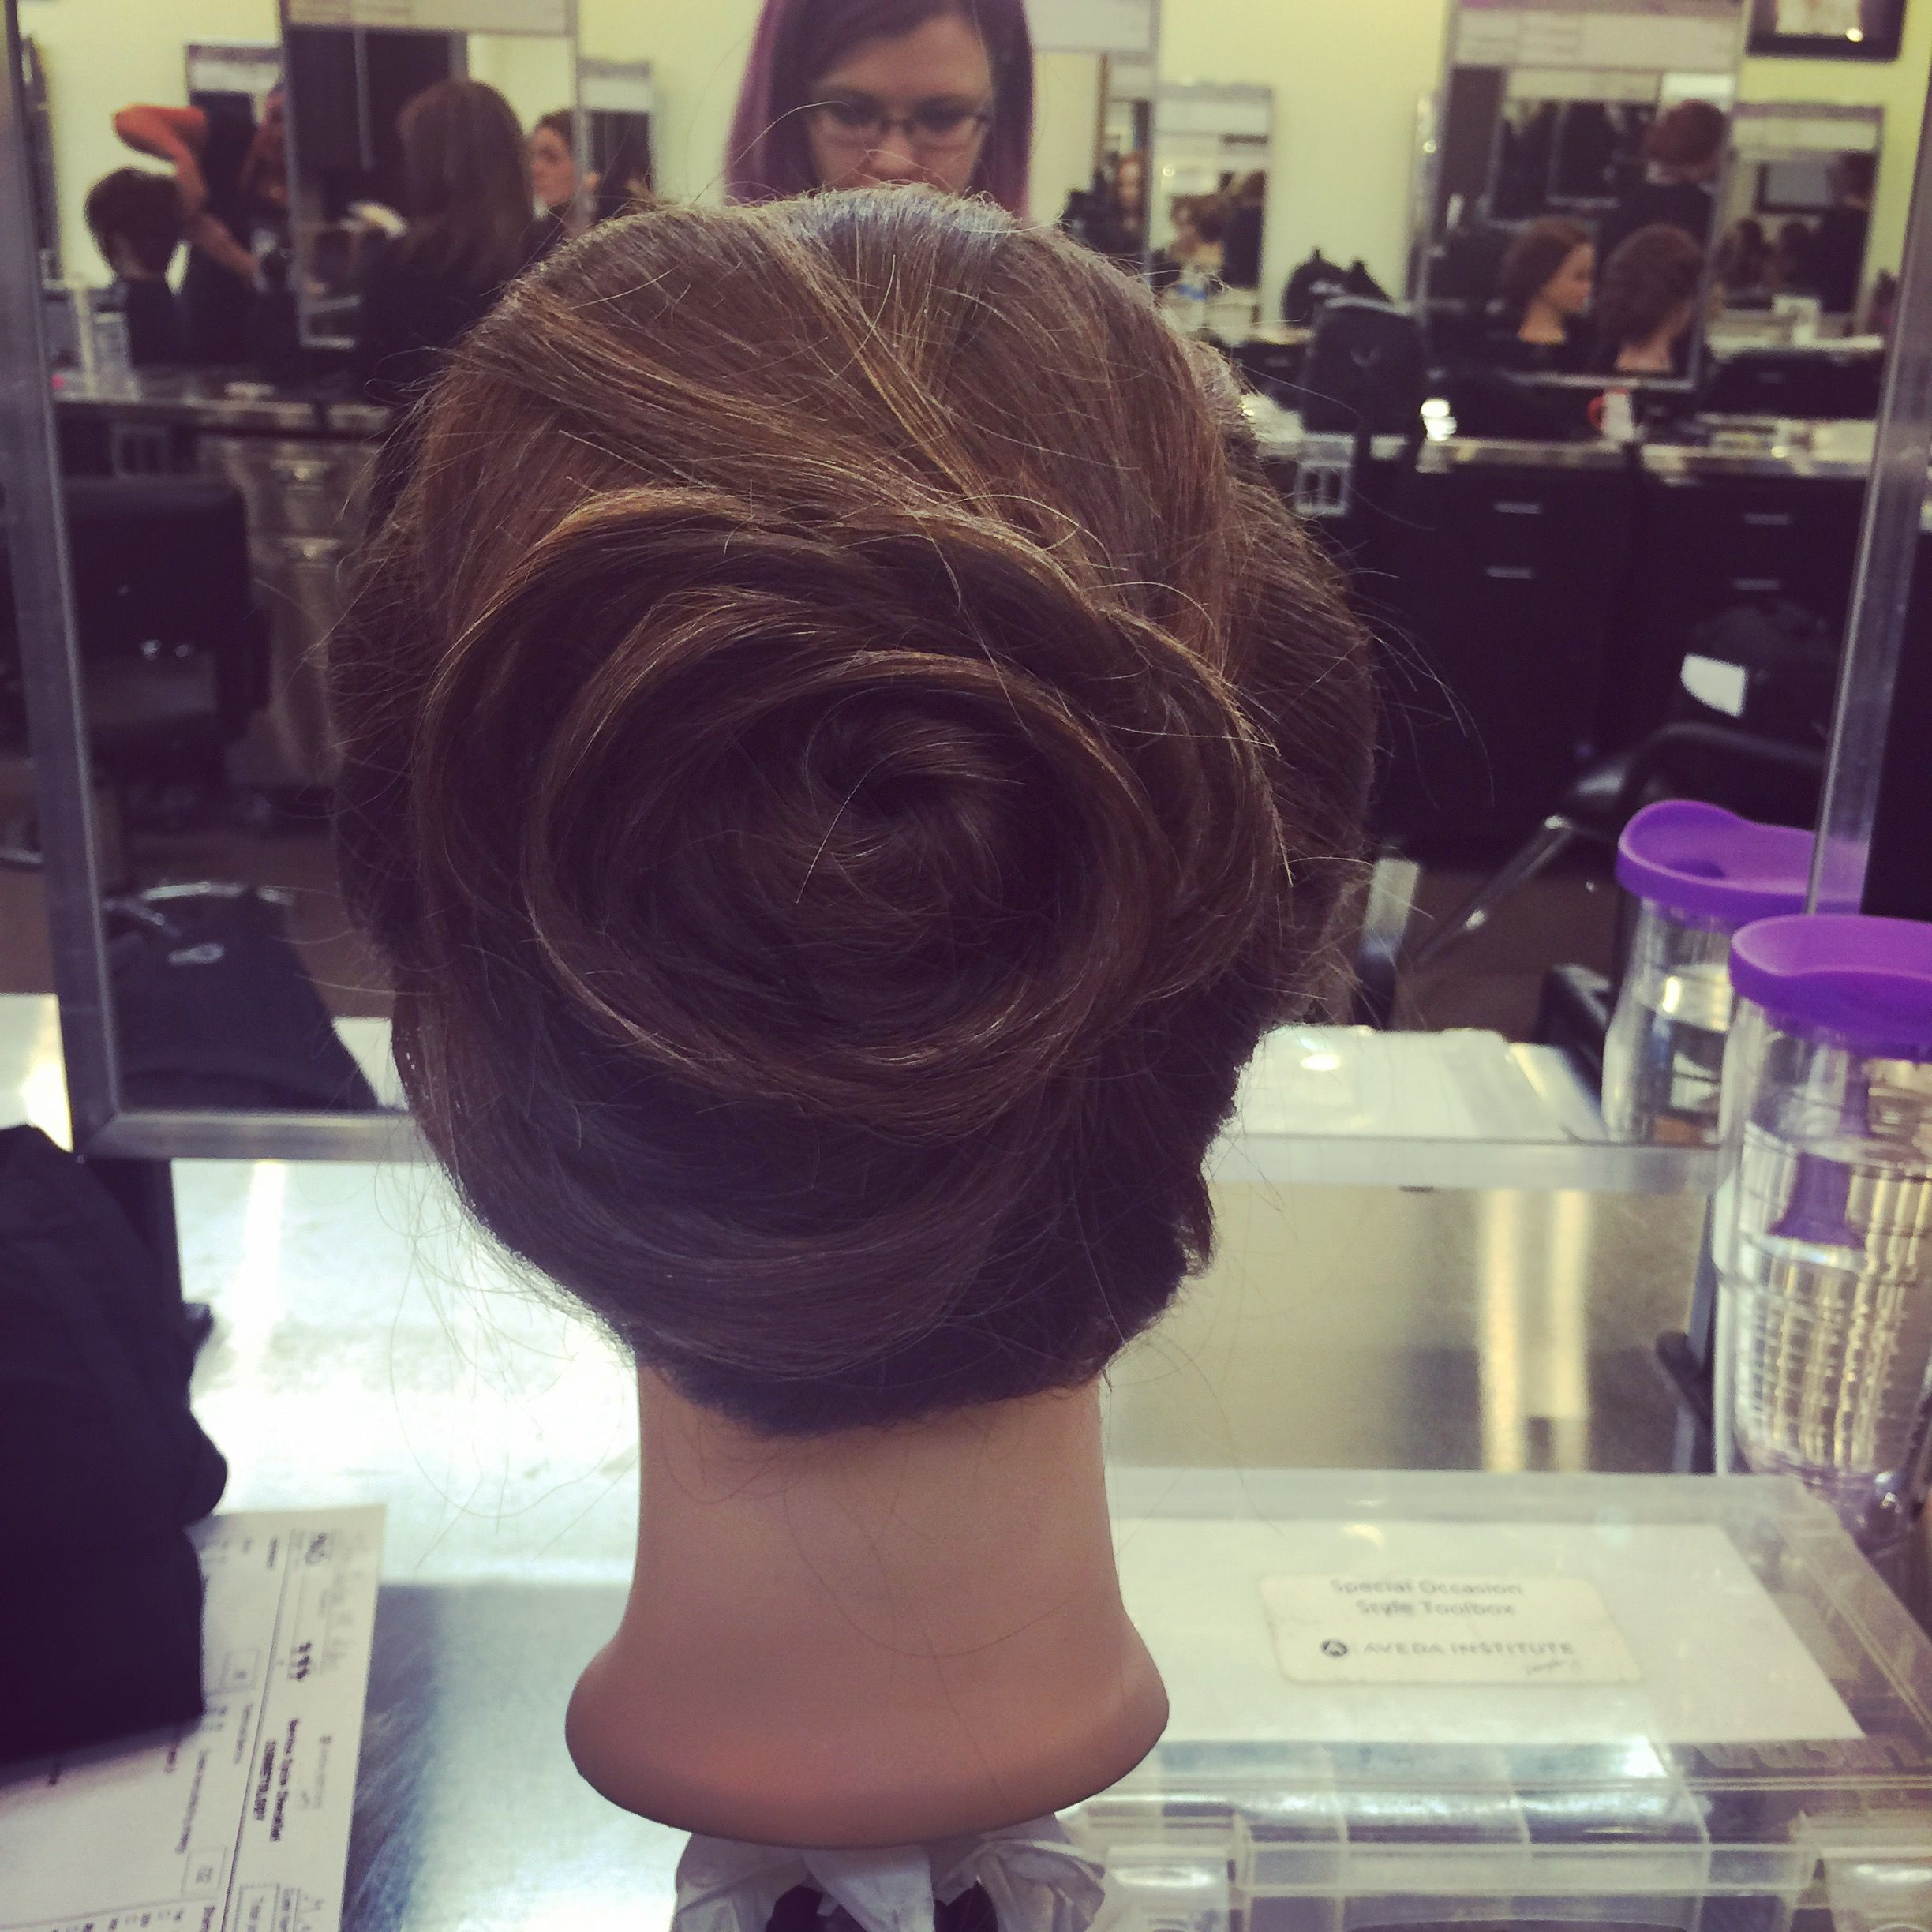 Rose bun updo my work pinterest rose bun bun updo and updo